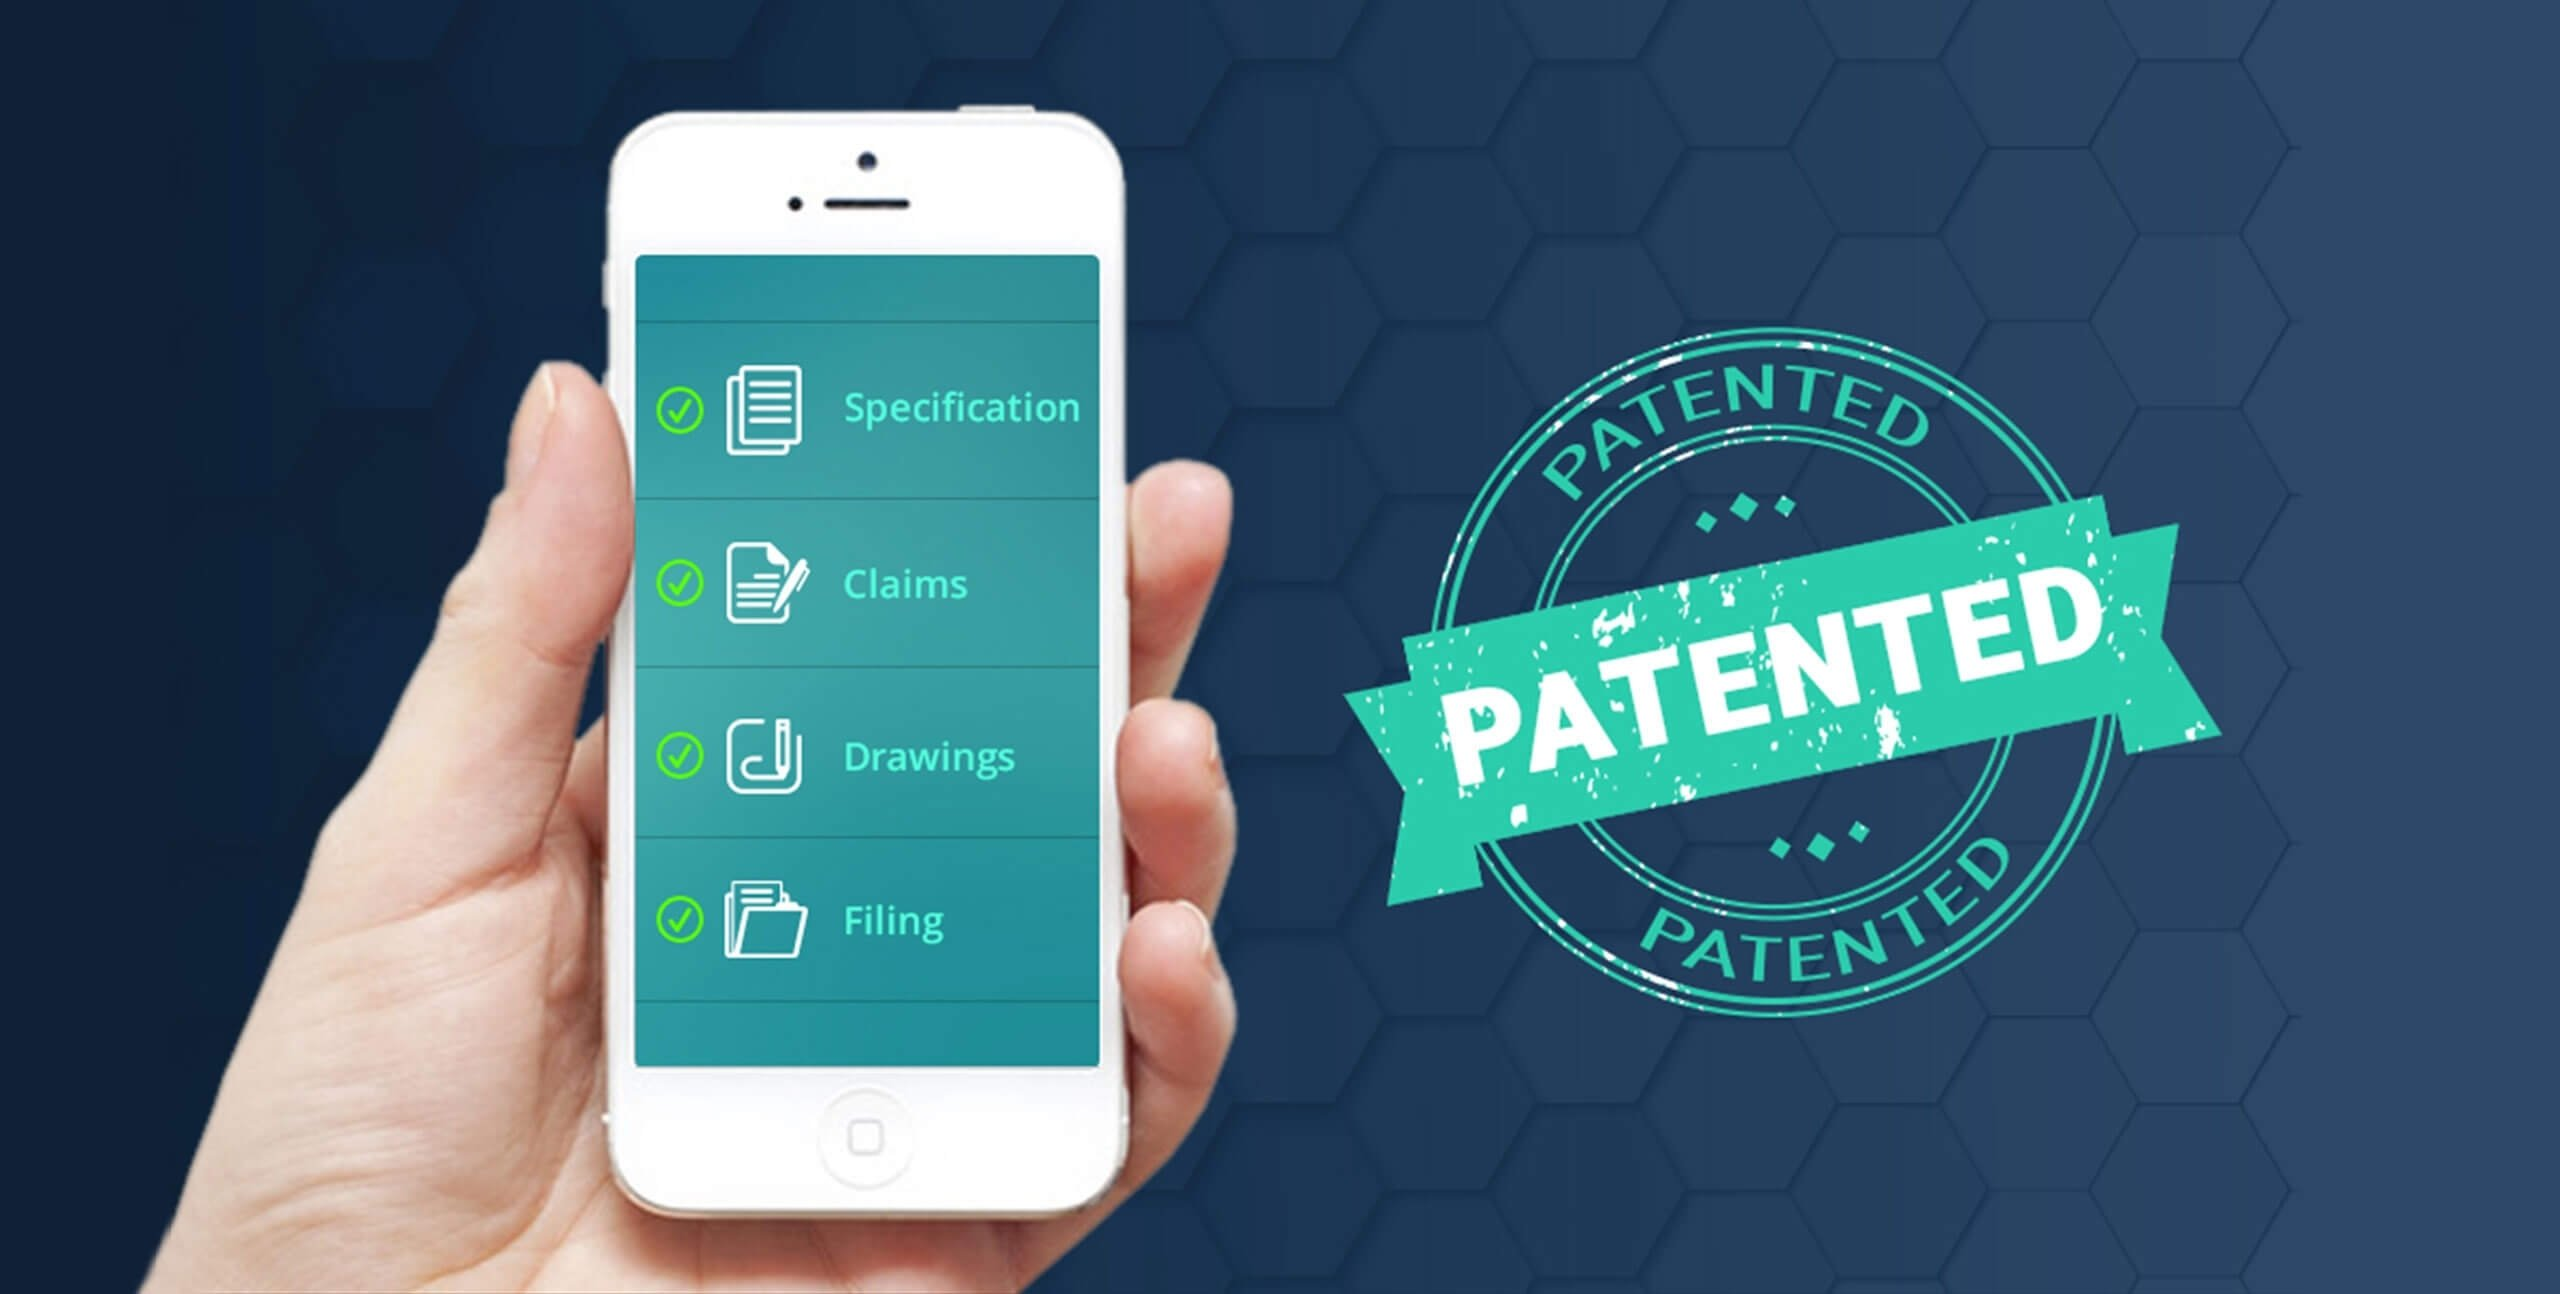 10 Perfect How To Patent An Idea Or Product how to patent your mobile app a truly brilliant idea deserves to 2 2020